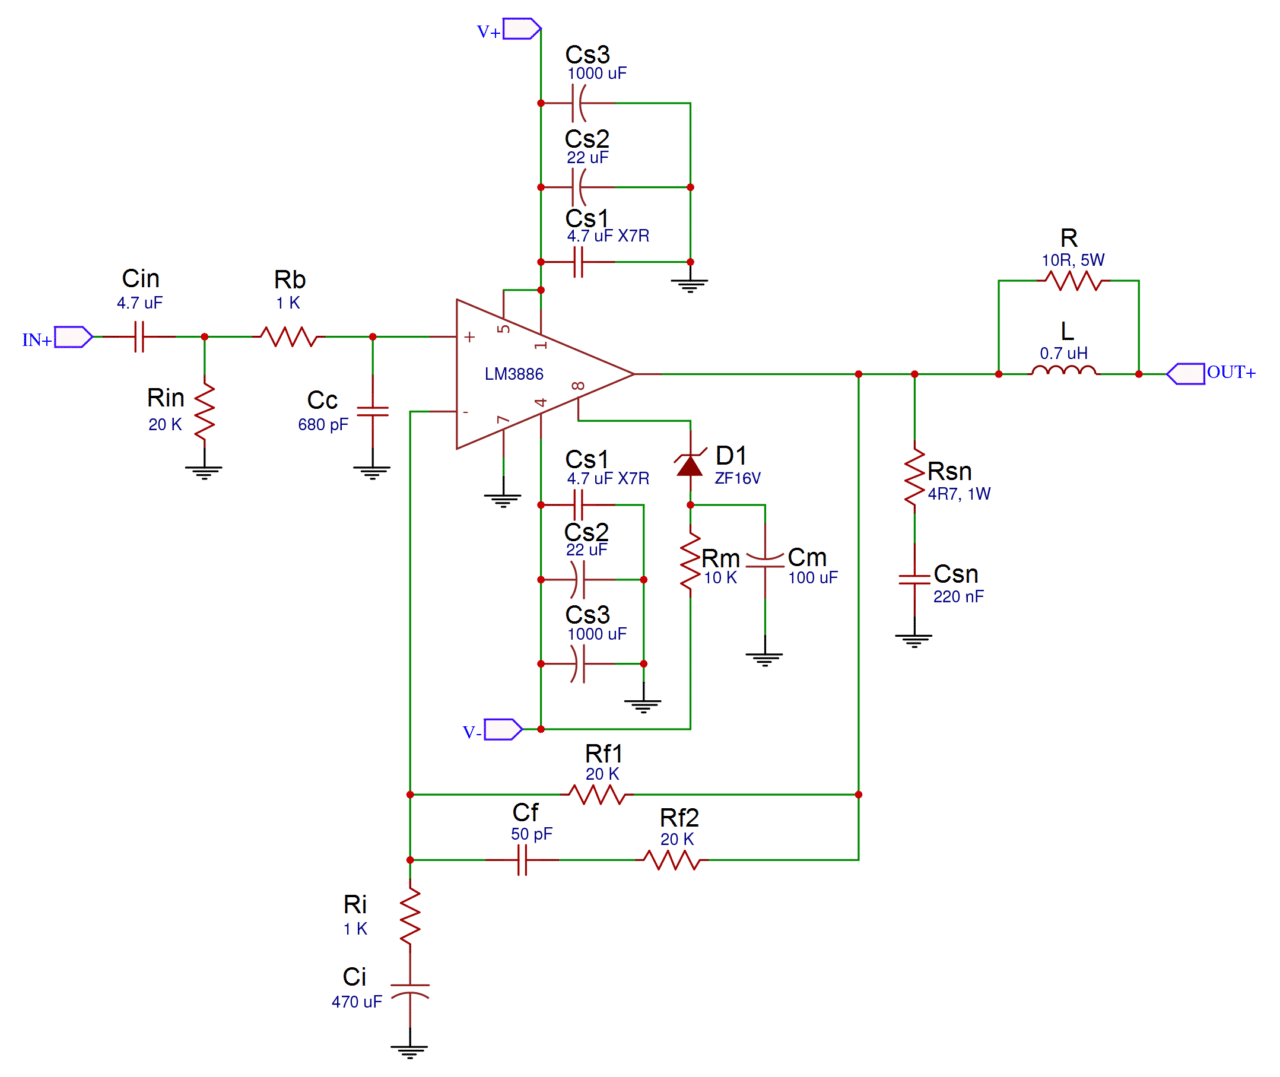 Ac Voltage Detector Circuit Related Keywords Suggestions A Complete Guide To Design And Build Hi Fi Lm3886 Amplifier Ill Be Using The Schematic Below Its Basically Same As One In Datasheet But With Optional Stability Components Included